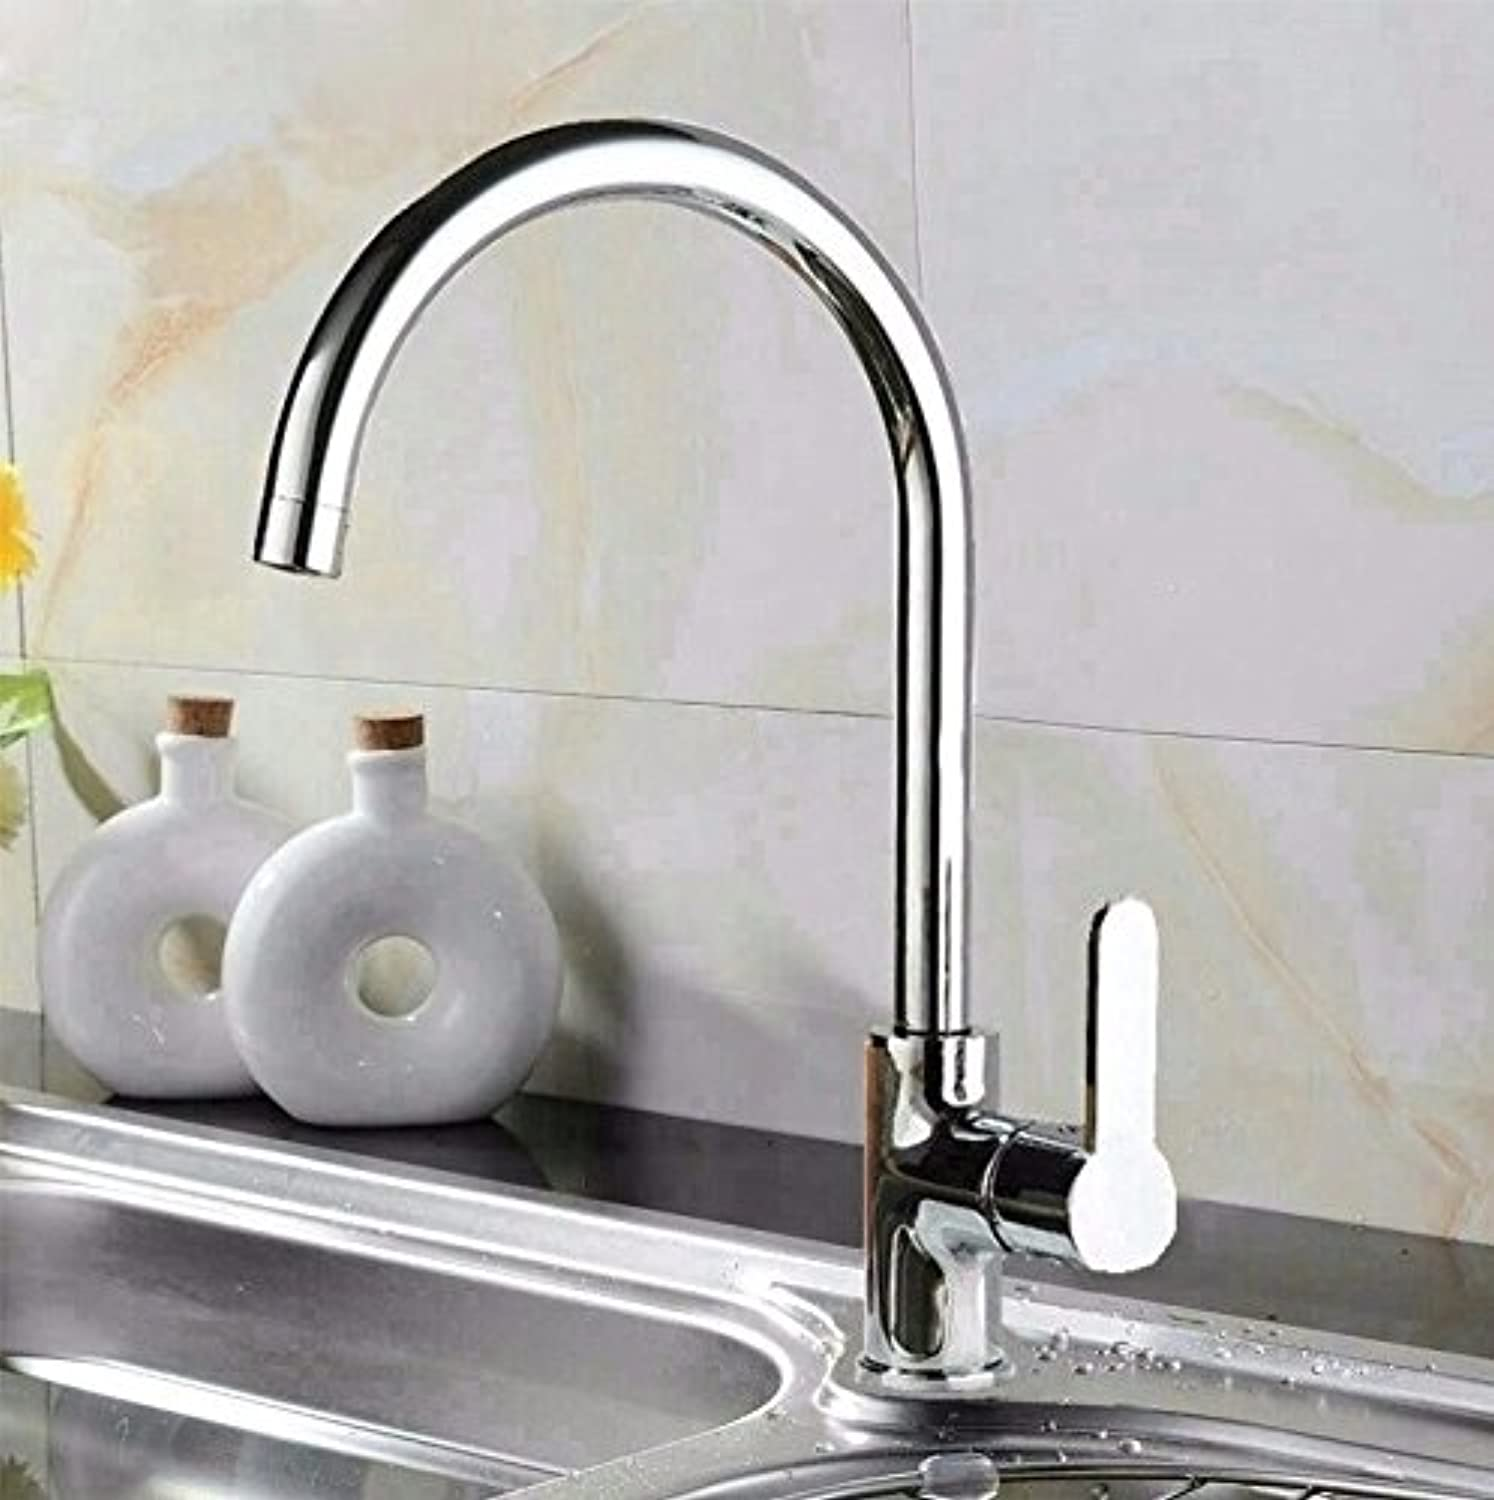 Commercial Single Lever Pull Down Kitchen Sink Faucet Brass Constructed Polished Kitchen Faucet, Hot and Cold Copper Sink Faucet, Laundry Pool Dishwashing redatable Universal Sink Faucet